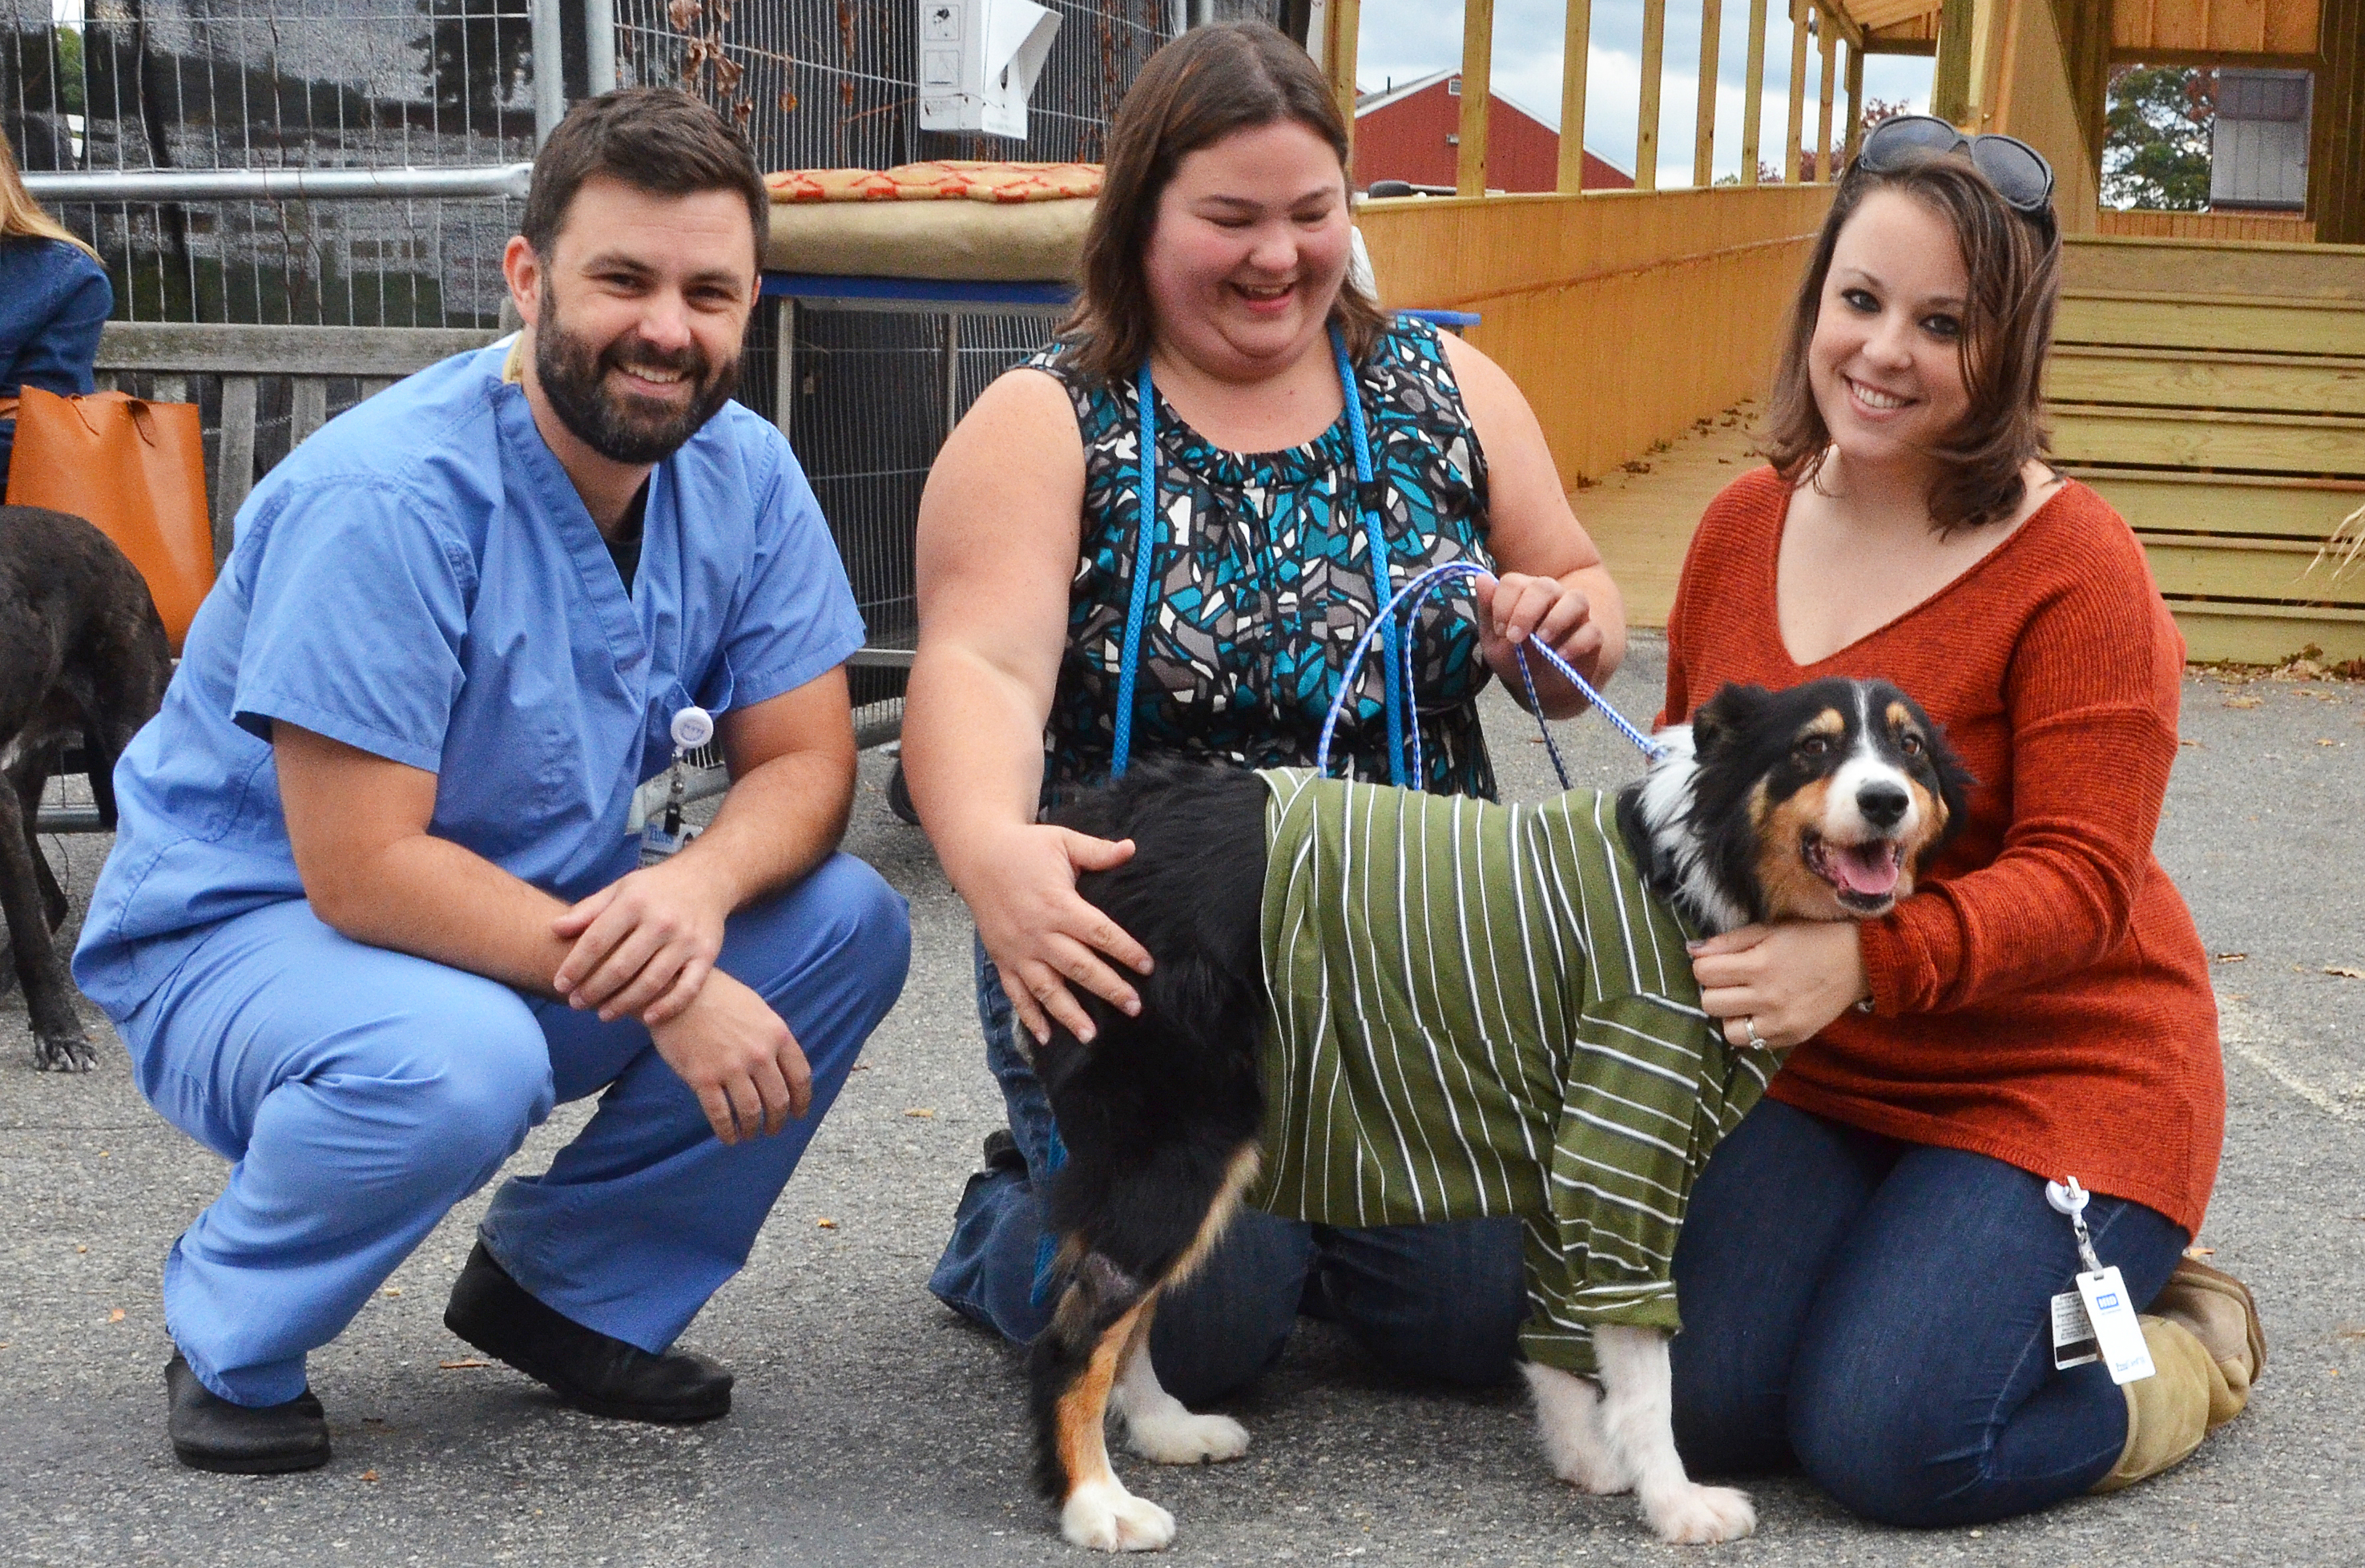 Dog's Recovery at Tufts Highlights Need for Genetic Testing, Owner Vigilance